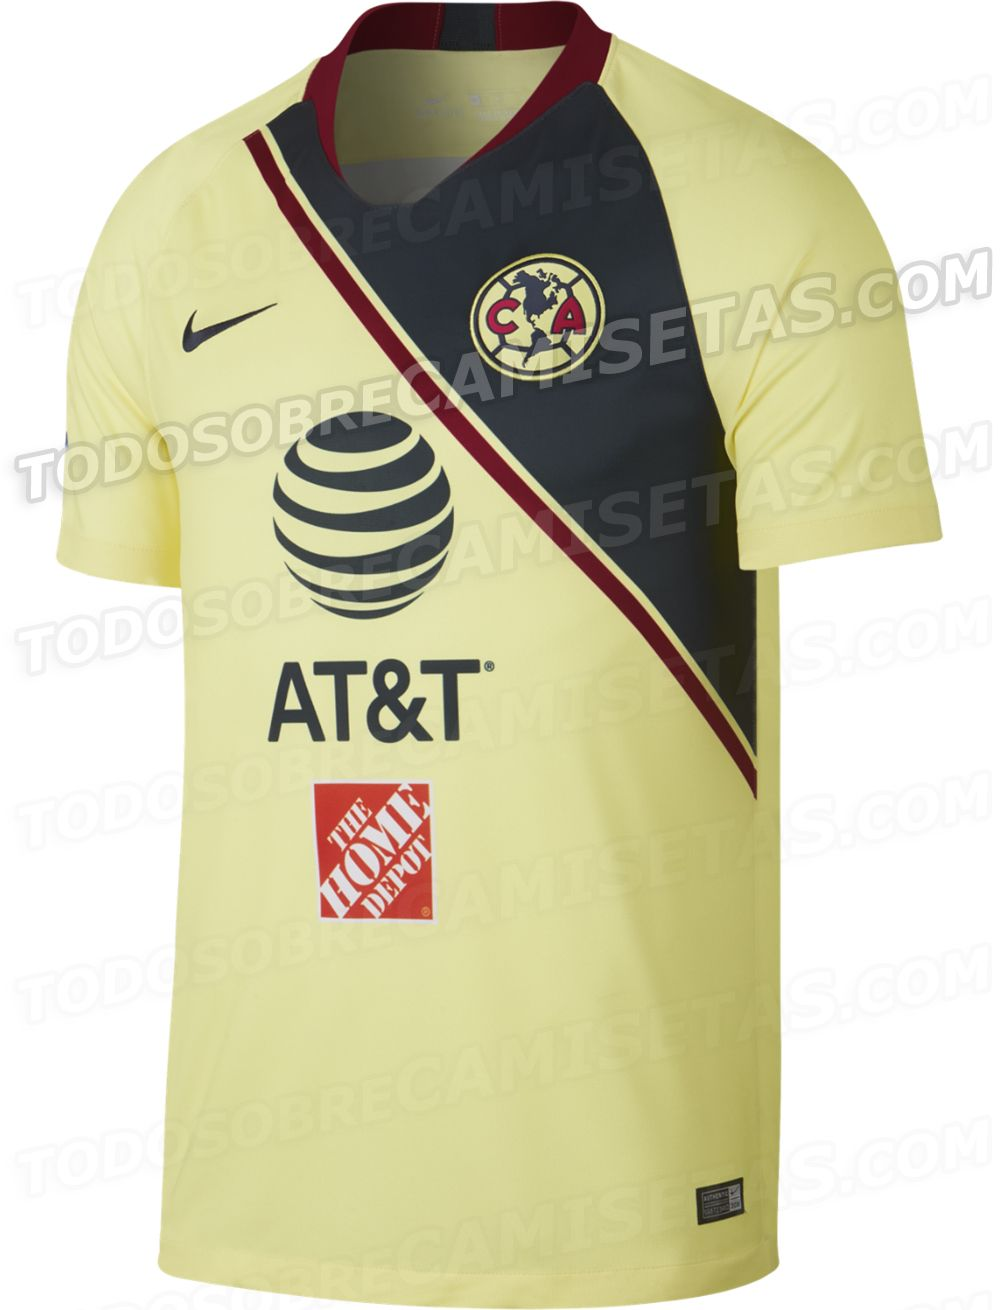 2849583802c Jerseys Nike de Club America 2018-19